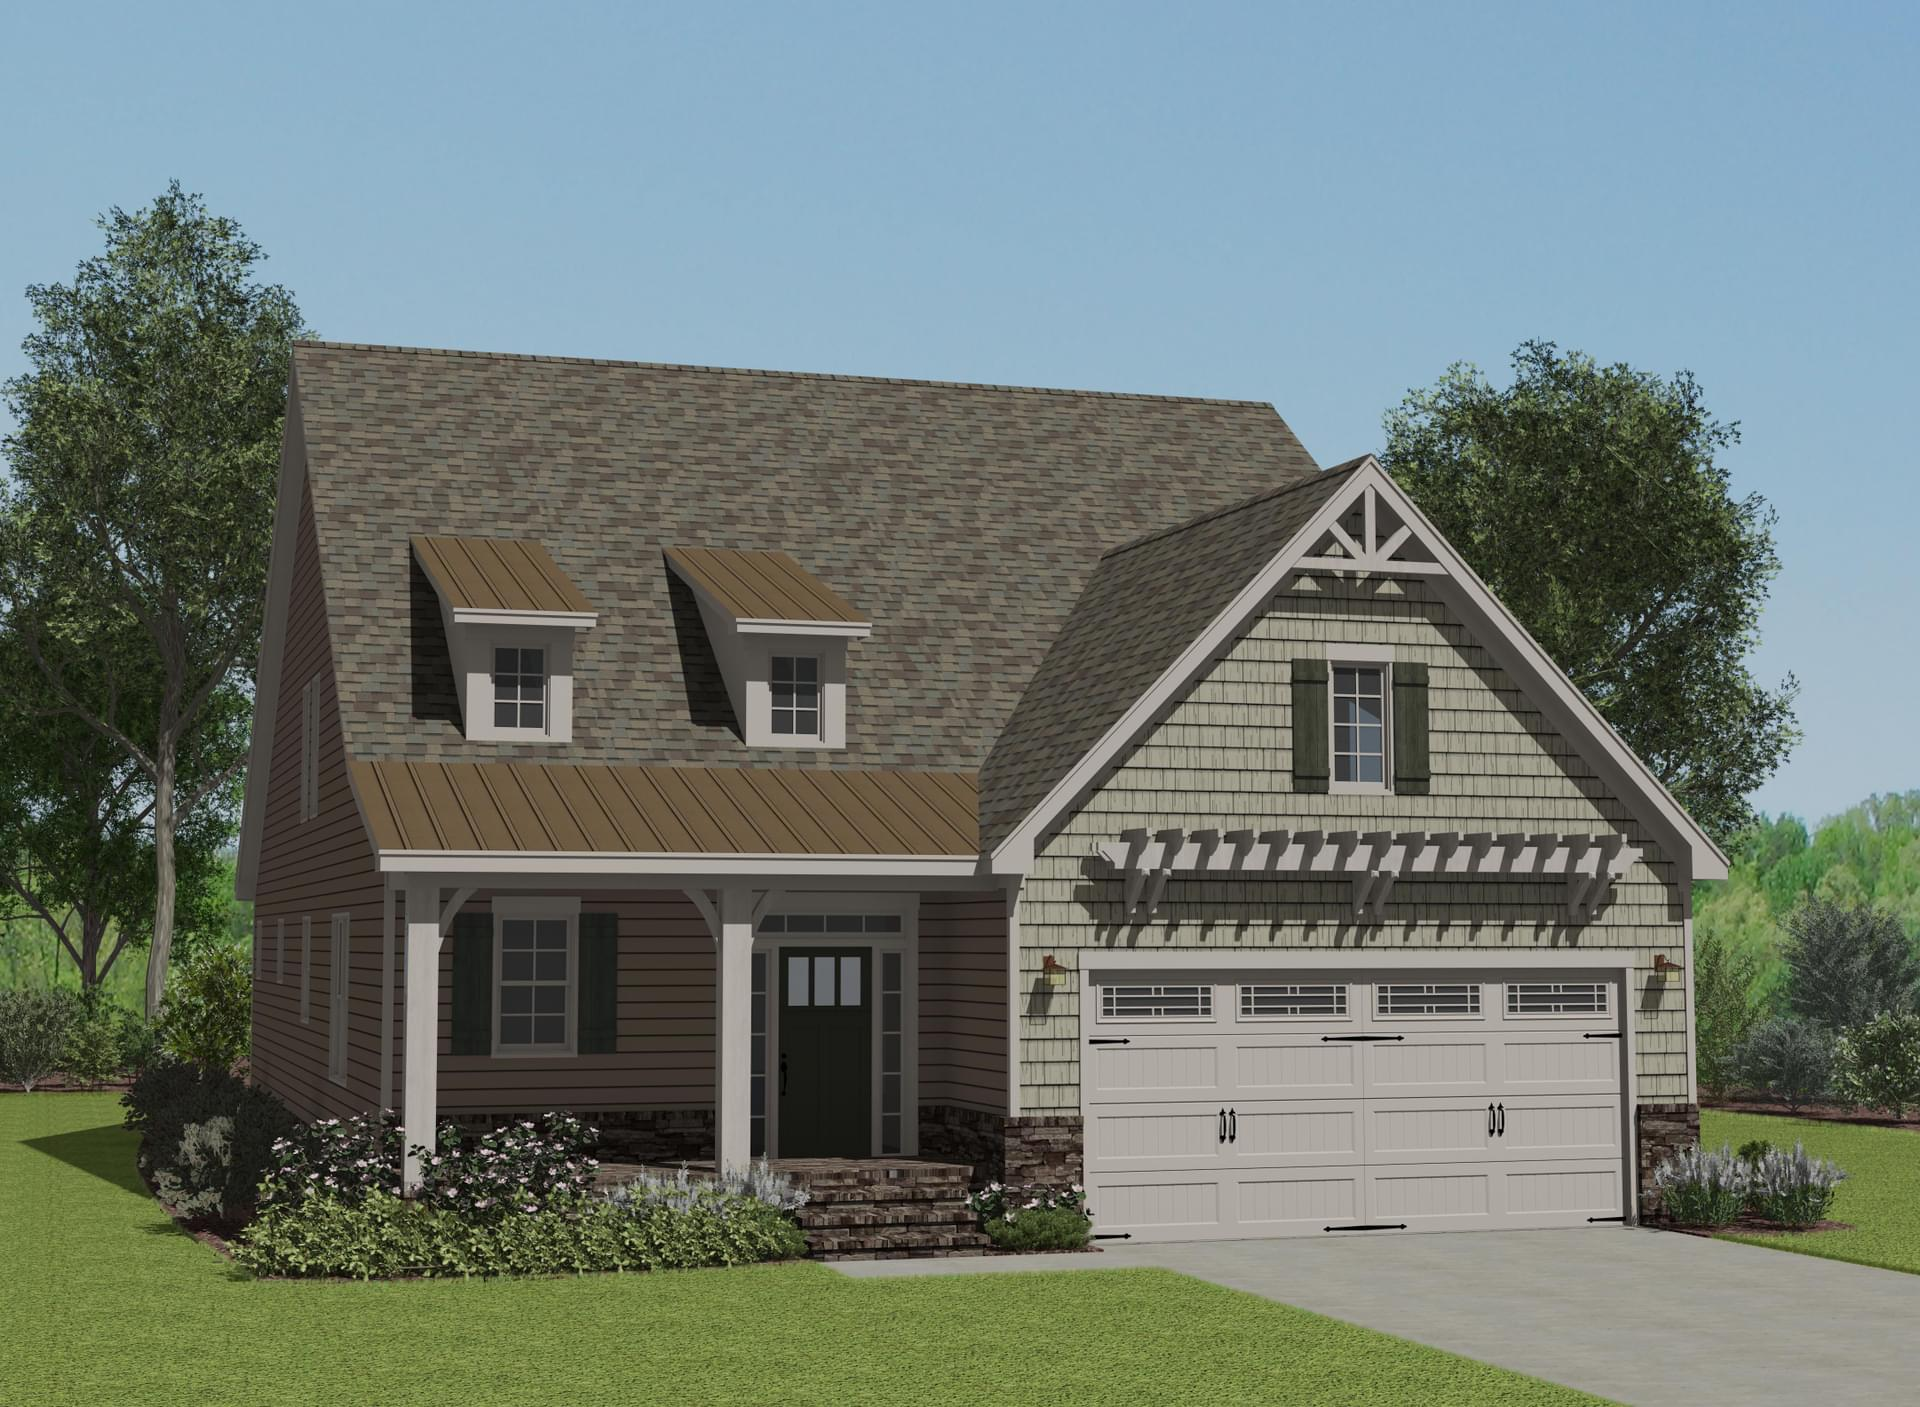 1.132 Lot for Sale in Hillsborough, NC